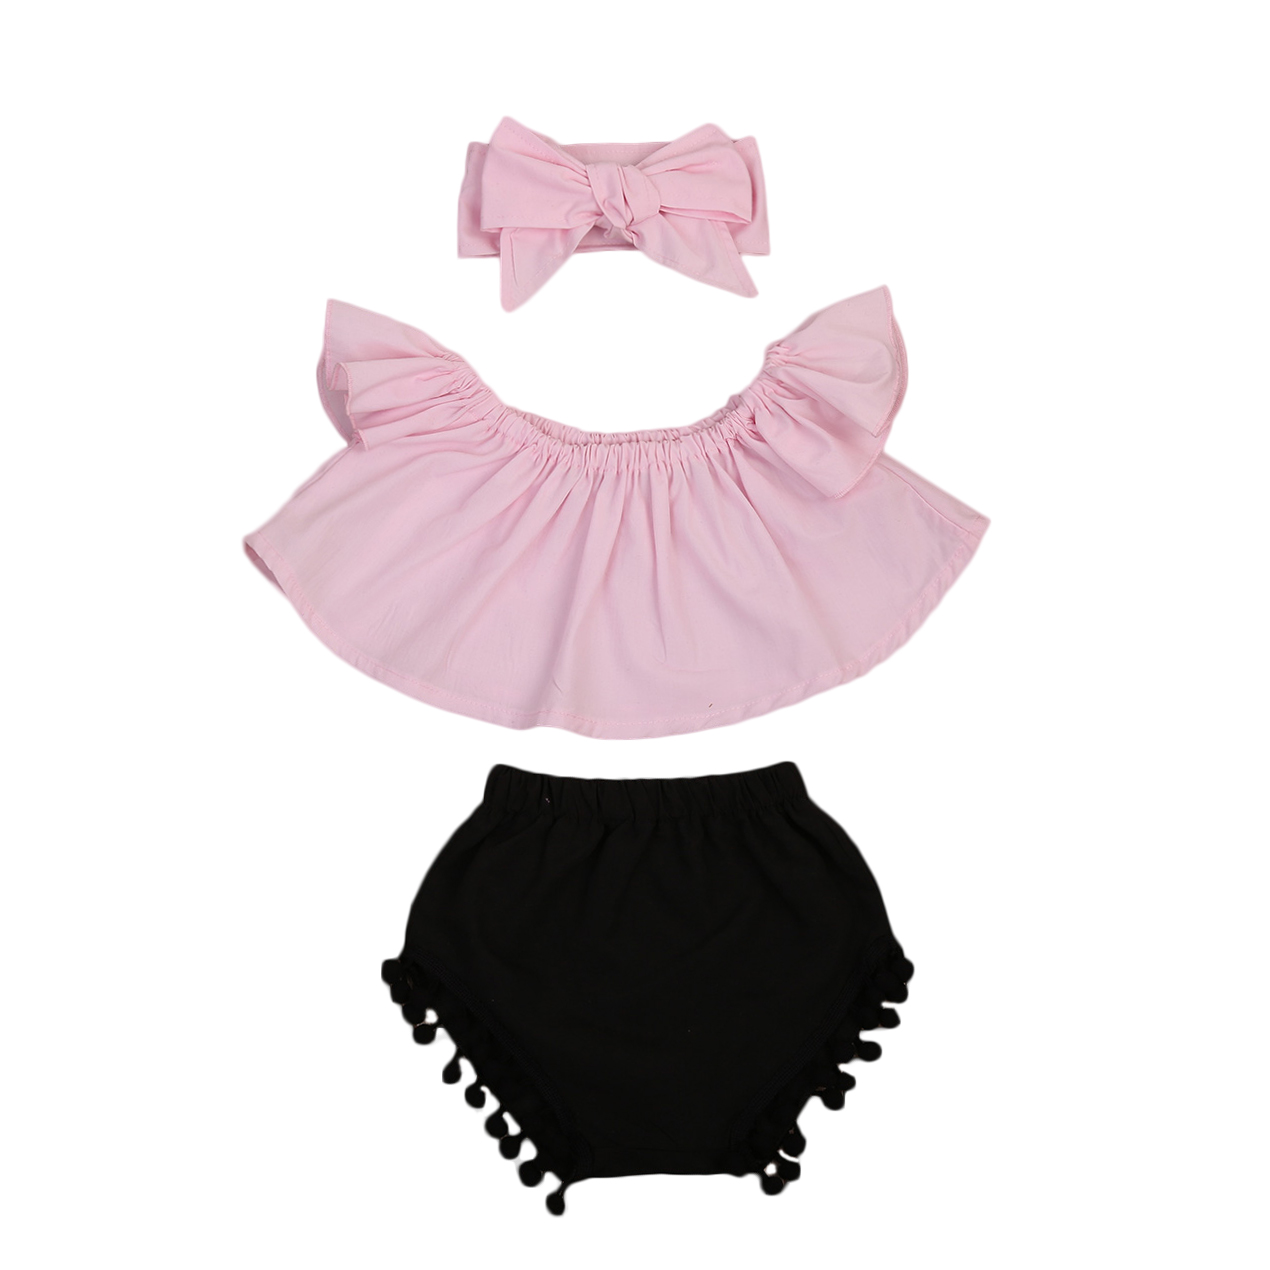 2017 Newborn Baby Girl Clothes Set Off Shoulder Top T-Shirt+ Tassel e shorts +Headband 3PCS Outfit Sunsuit Clothing summer casual denim newborn toddler baby girl clothing kids off shoulder crop tops shorts outfit clothes set